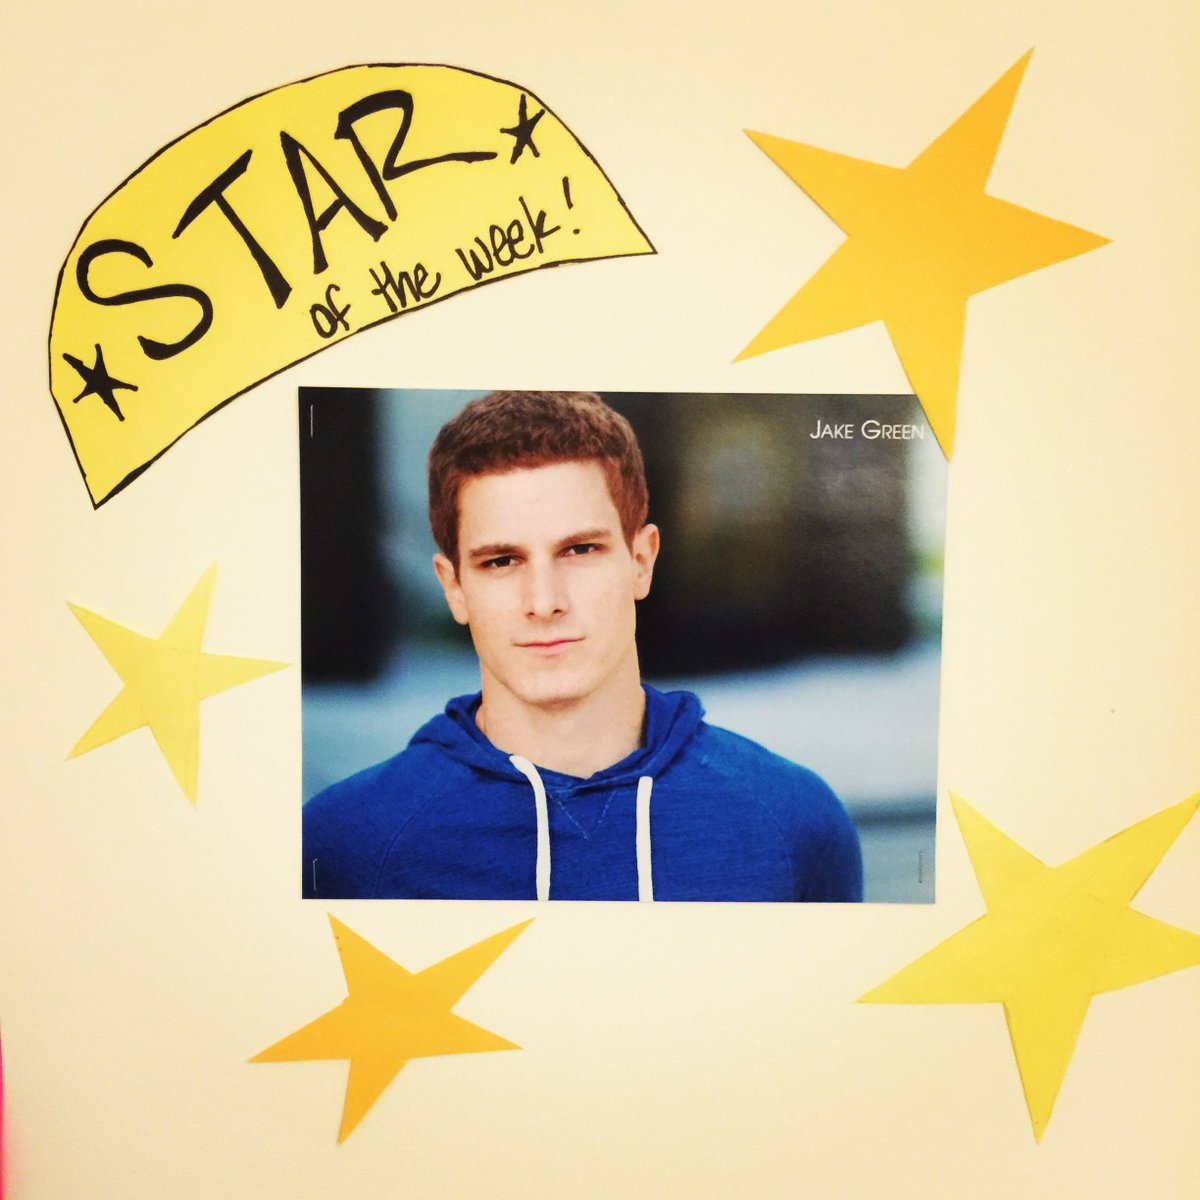 There's our #StarOfTheWeek @iamjakegreen! #TheCatch https://t.co/SxXoqv4iKw